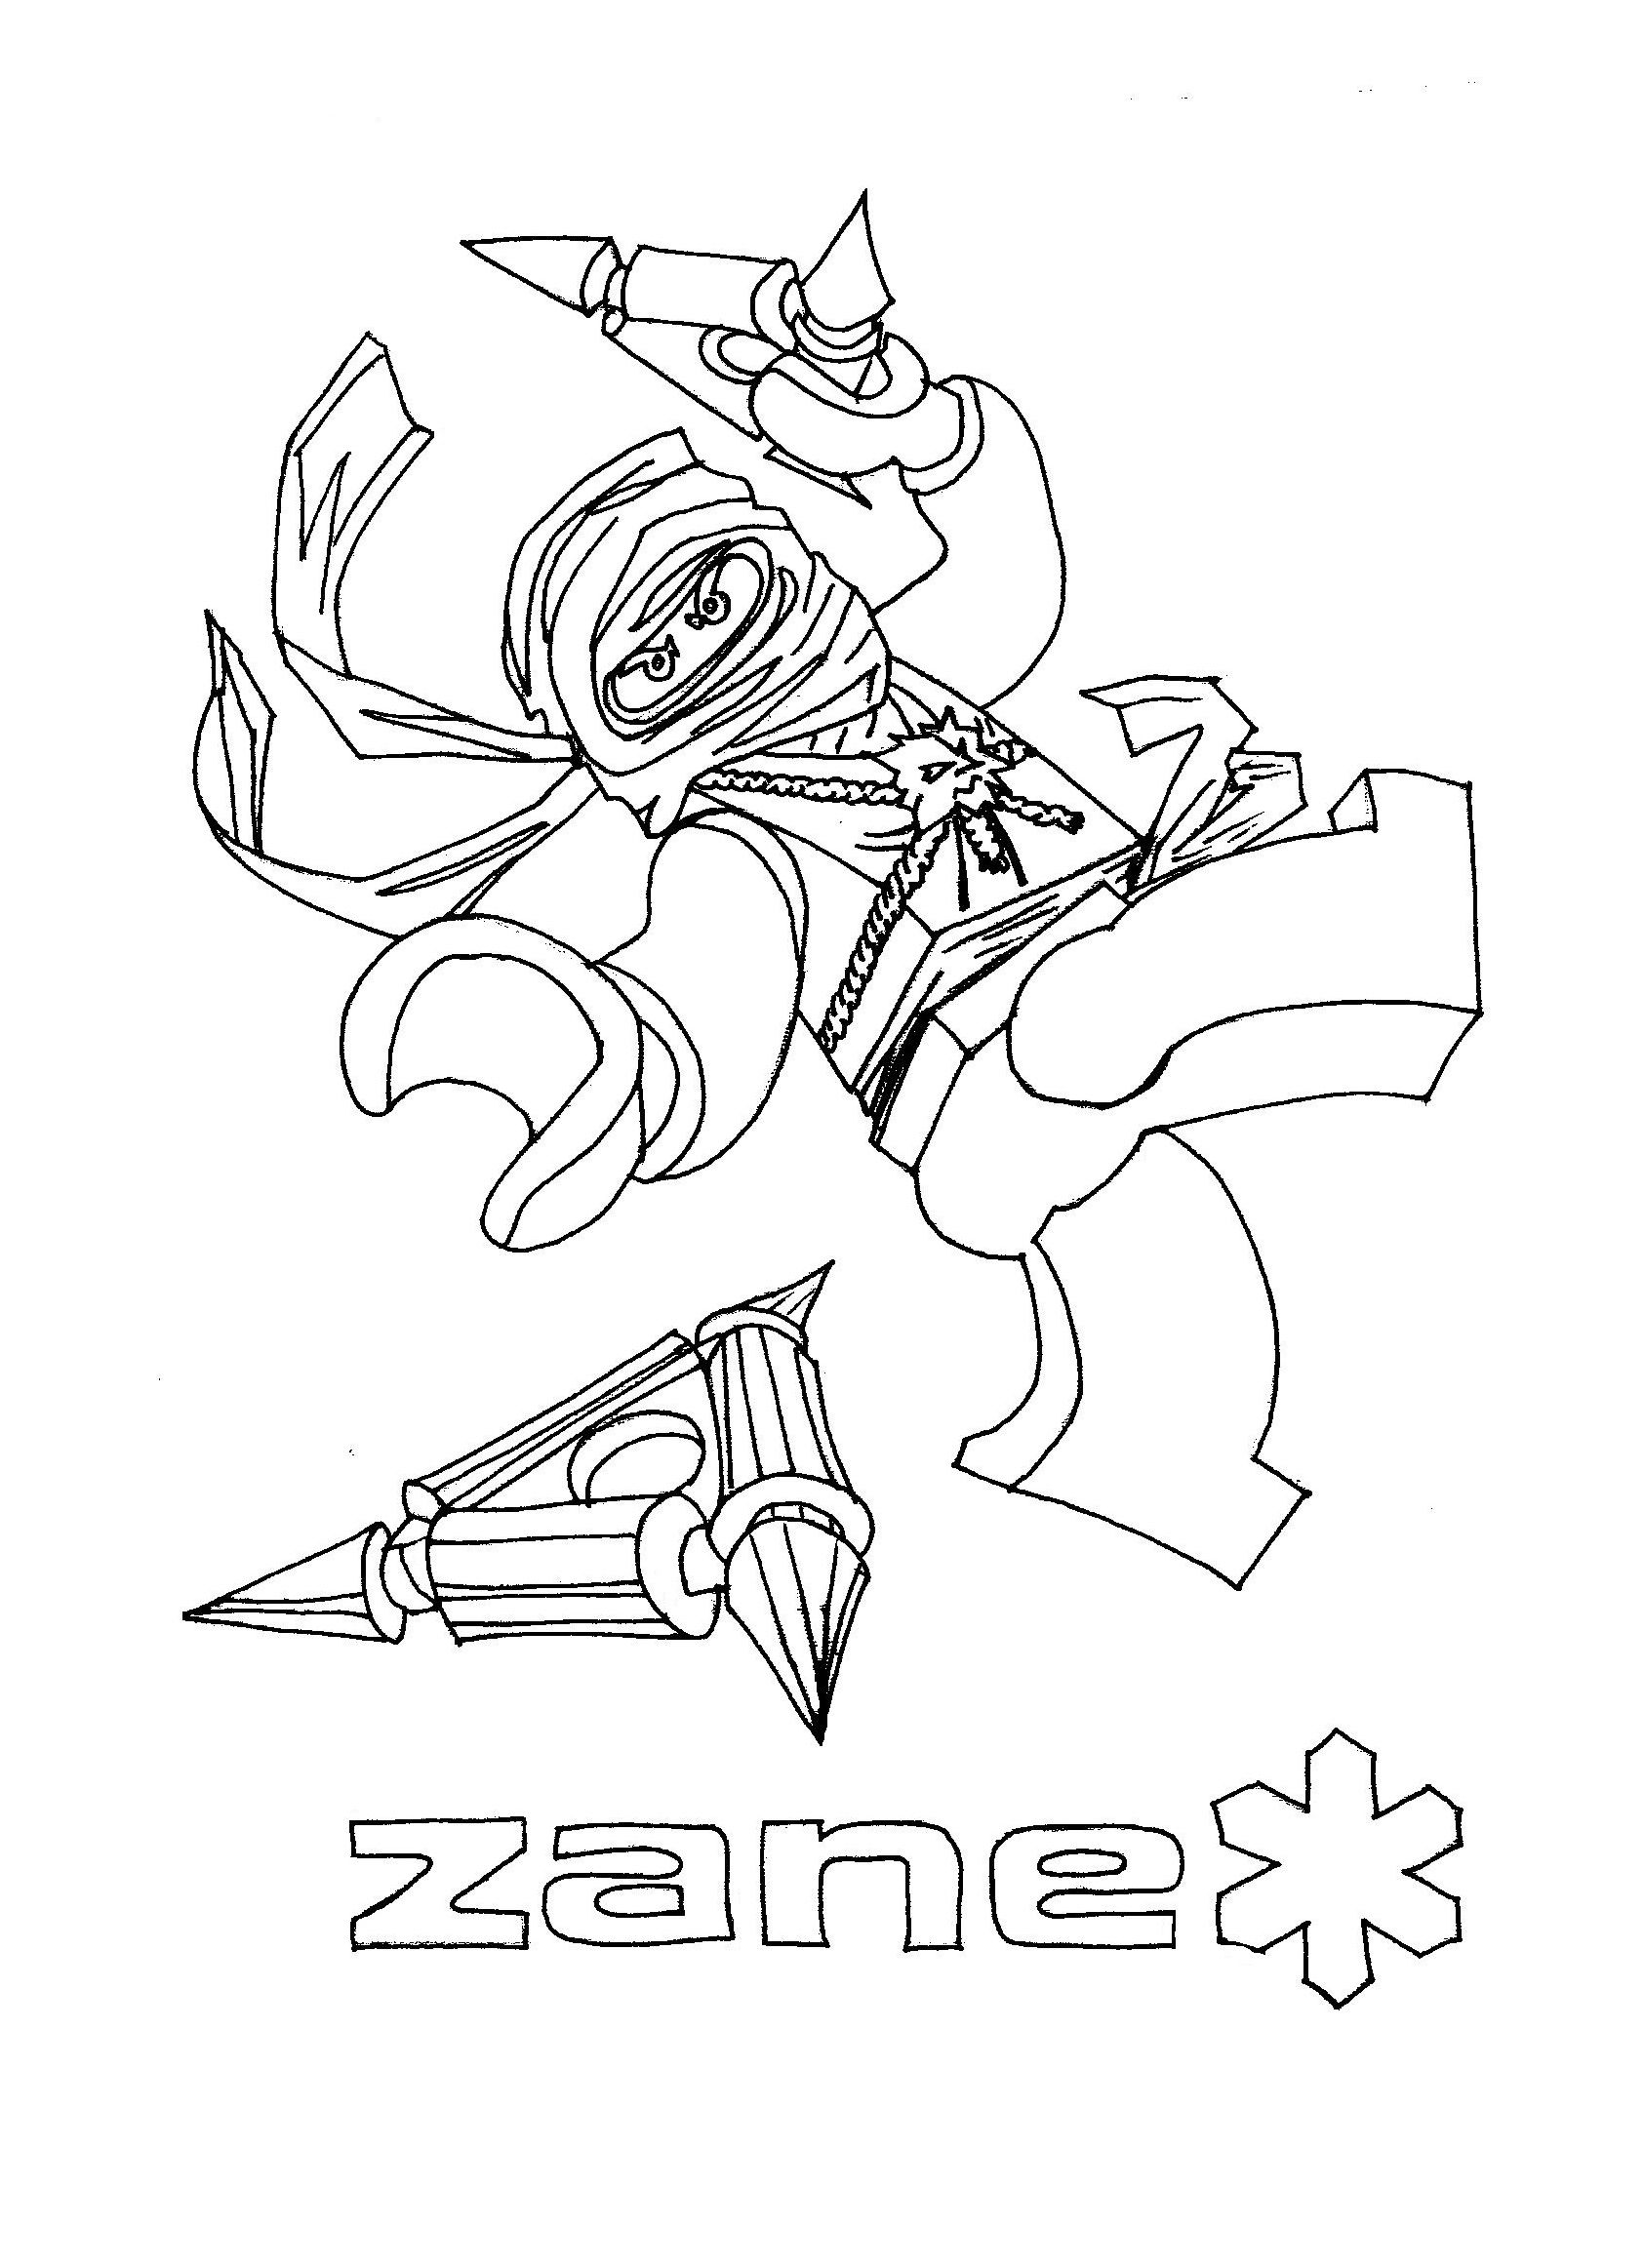 Lego Ninjago Zane Ausmalbilder : Coloring Pages Ninjago Zane And The Rest Of The Ninja Bat